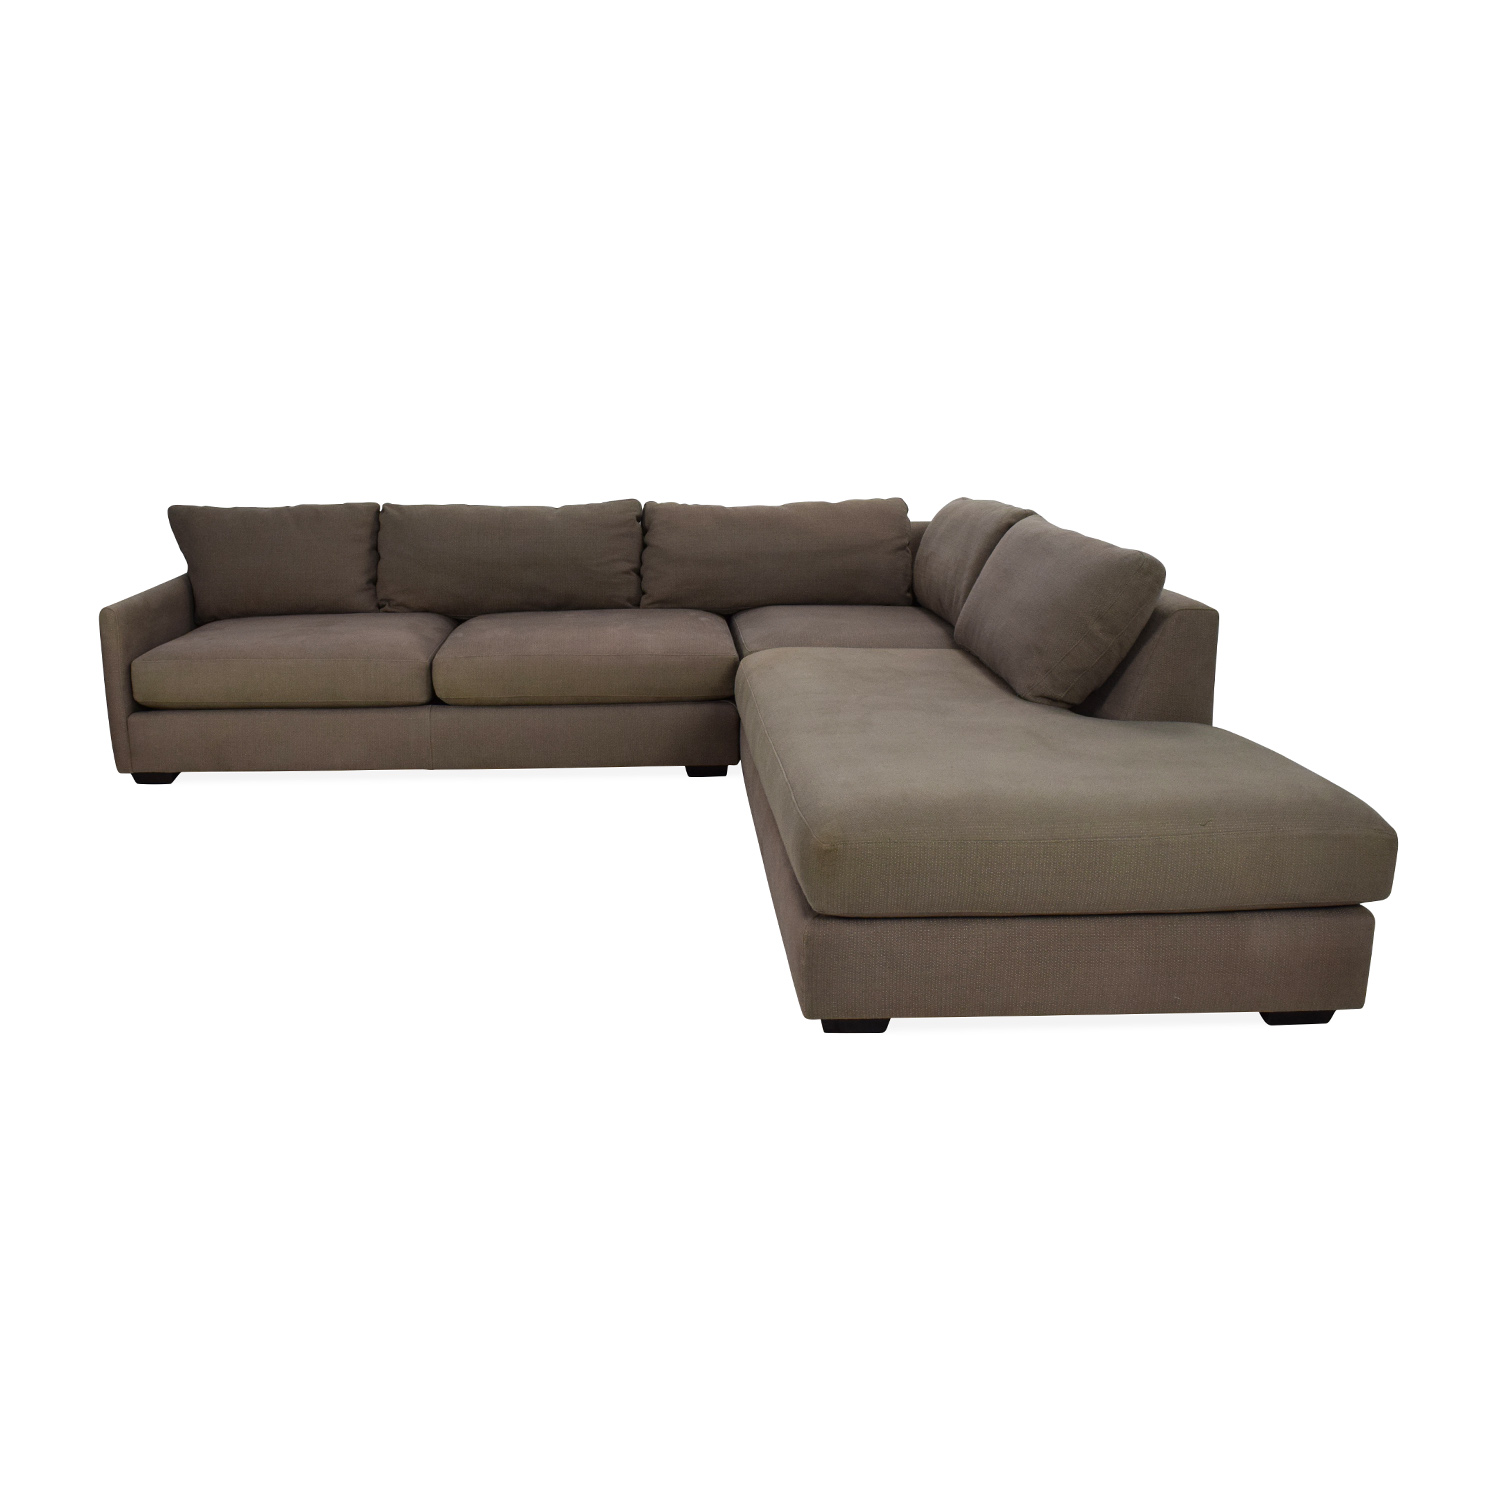 2nd hand sectional sofa ebay bed with storage 82 off crate and barrel domino sofas second